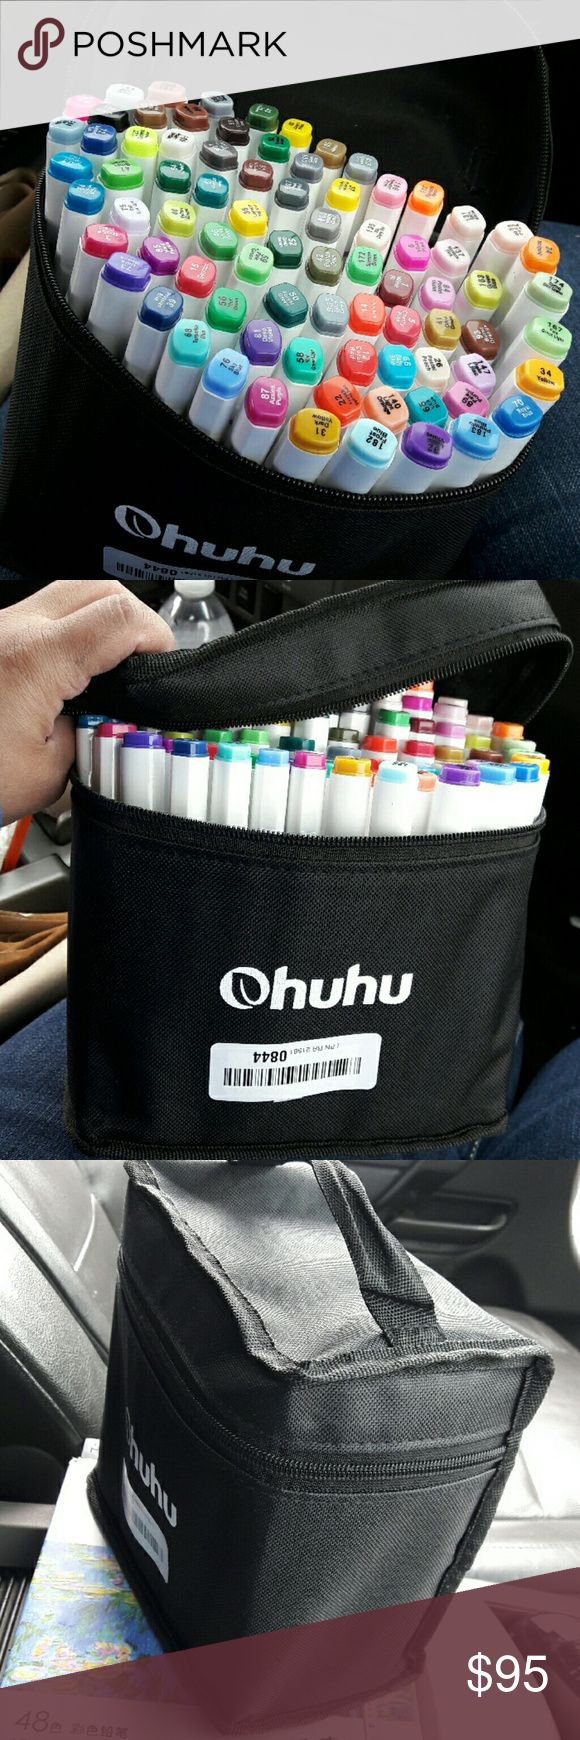 Ohuhu Markers Brand new in it's original carrying bag  a total of 80 markers! Lots of different color fine and thick tip on all markers! These are just like copic markers very good quality   Checkout my listings for more awesome stuff ohuhu markers  Accessories